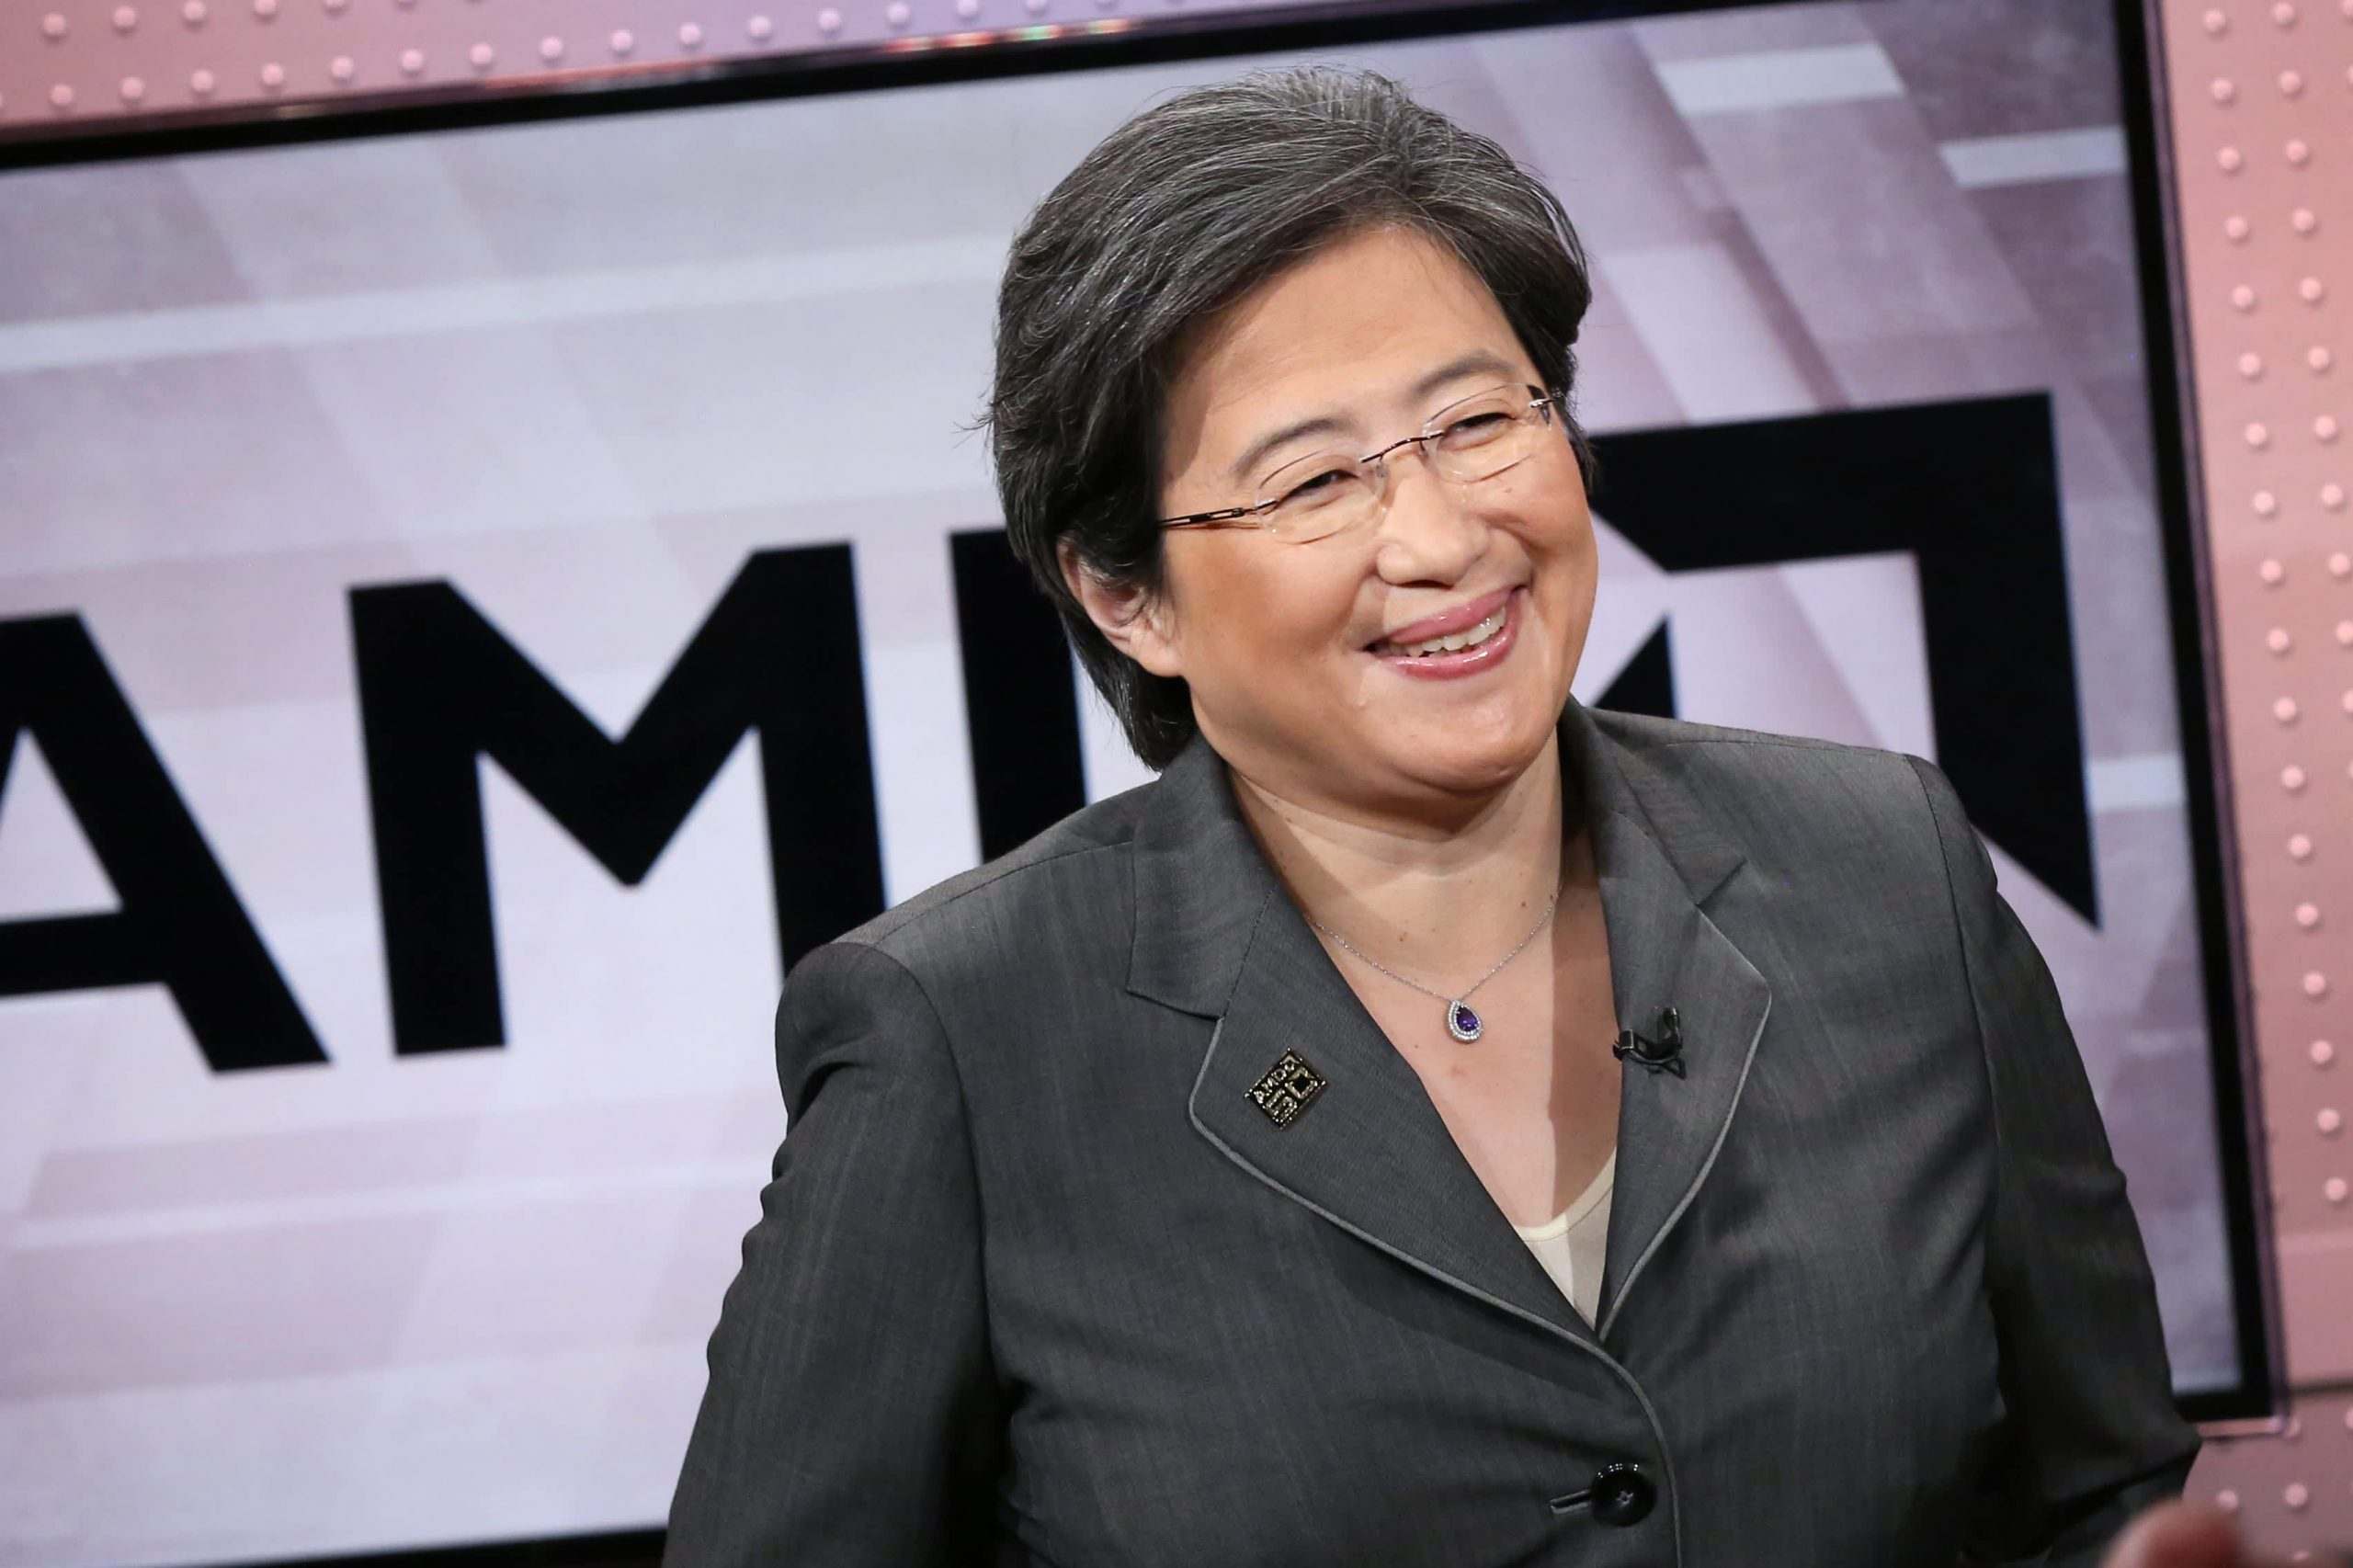 Jim Cramer says Intel shakeup is creating a buying opportunity in AMD